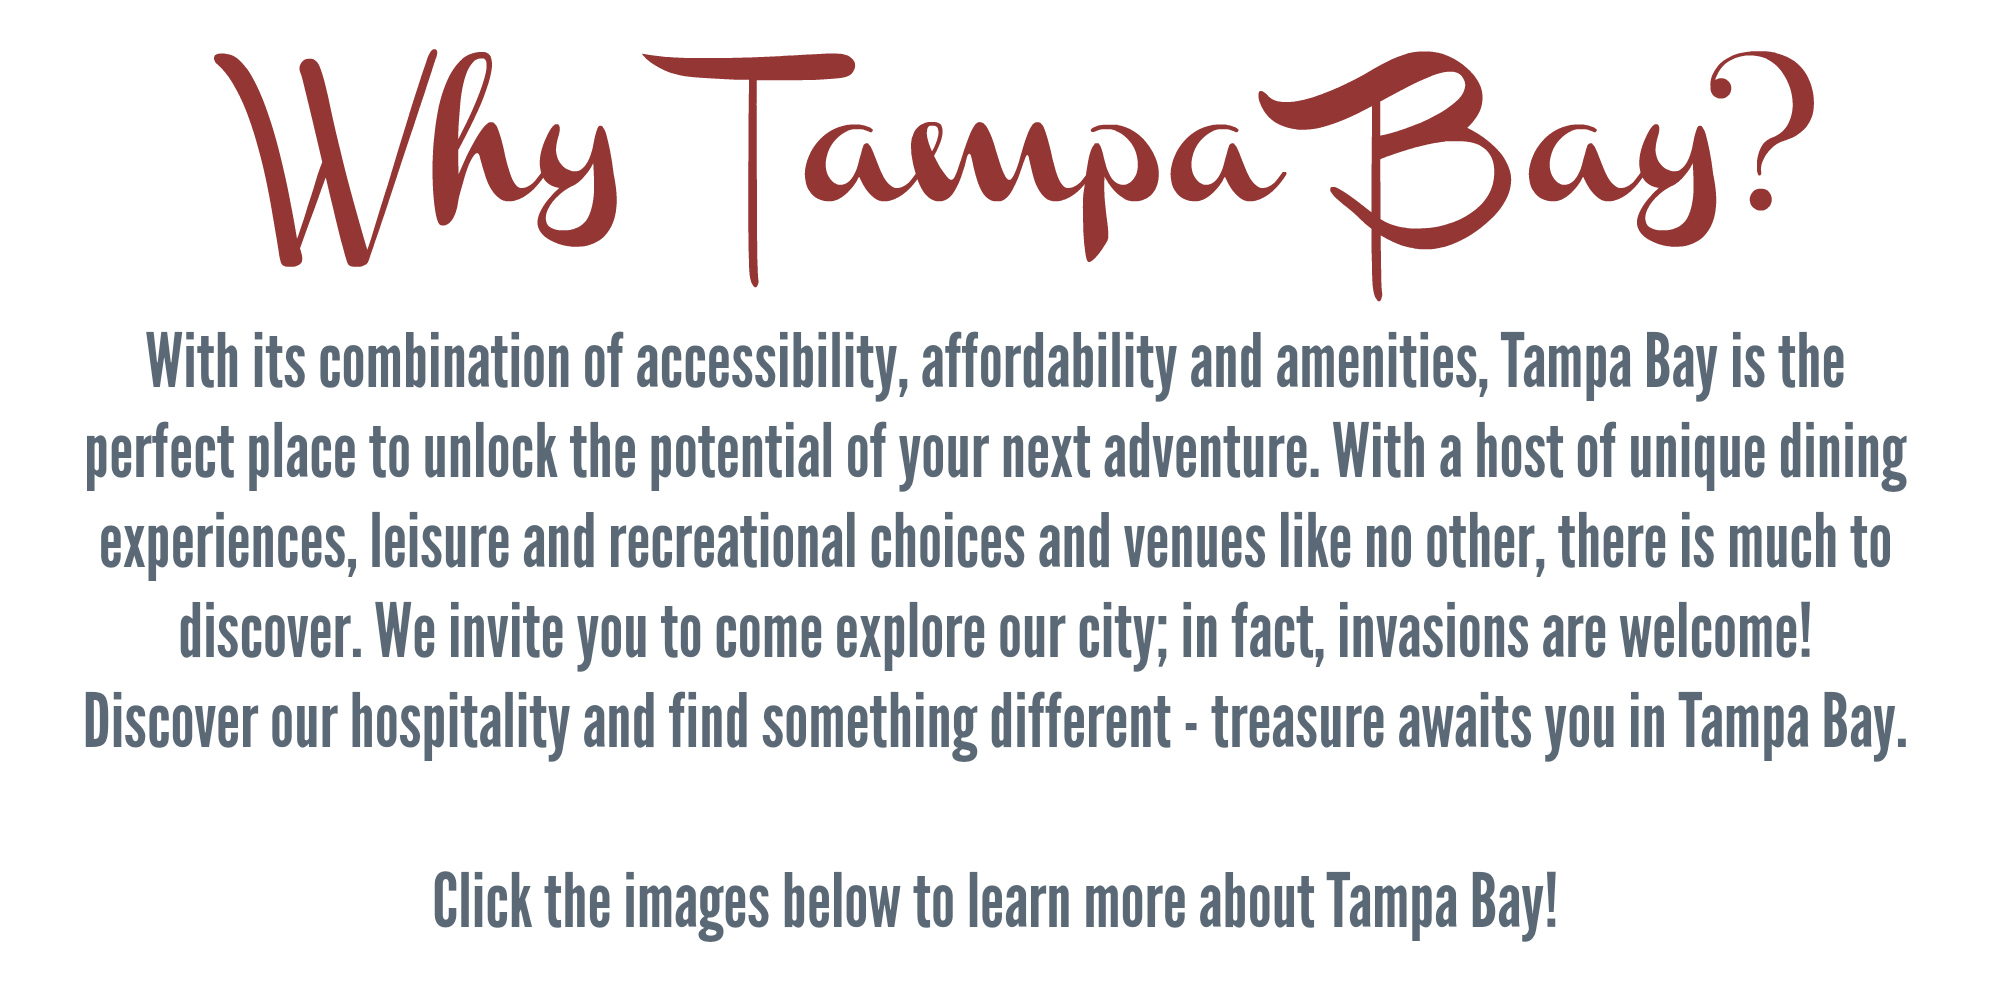 Why Tampa Bay